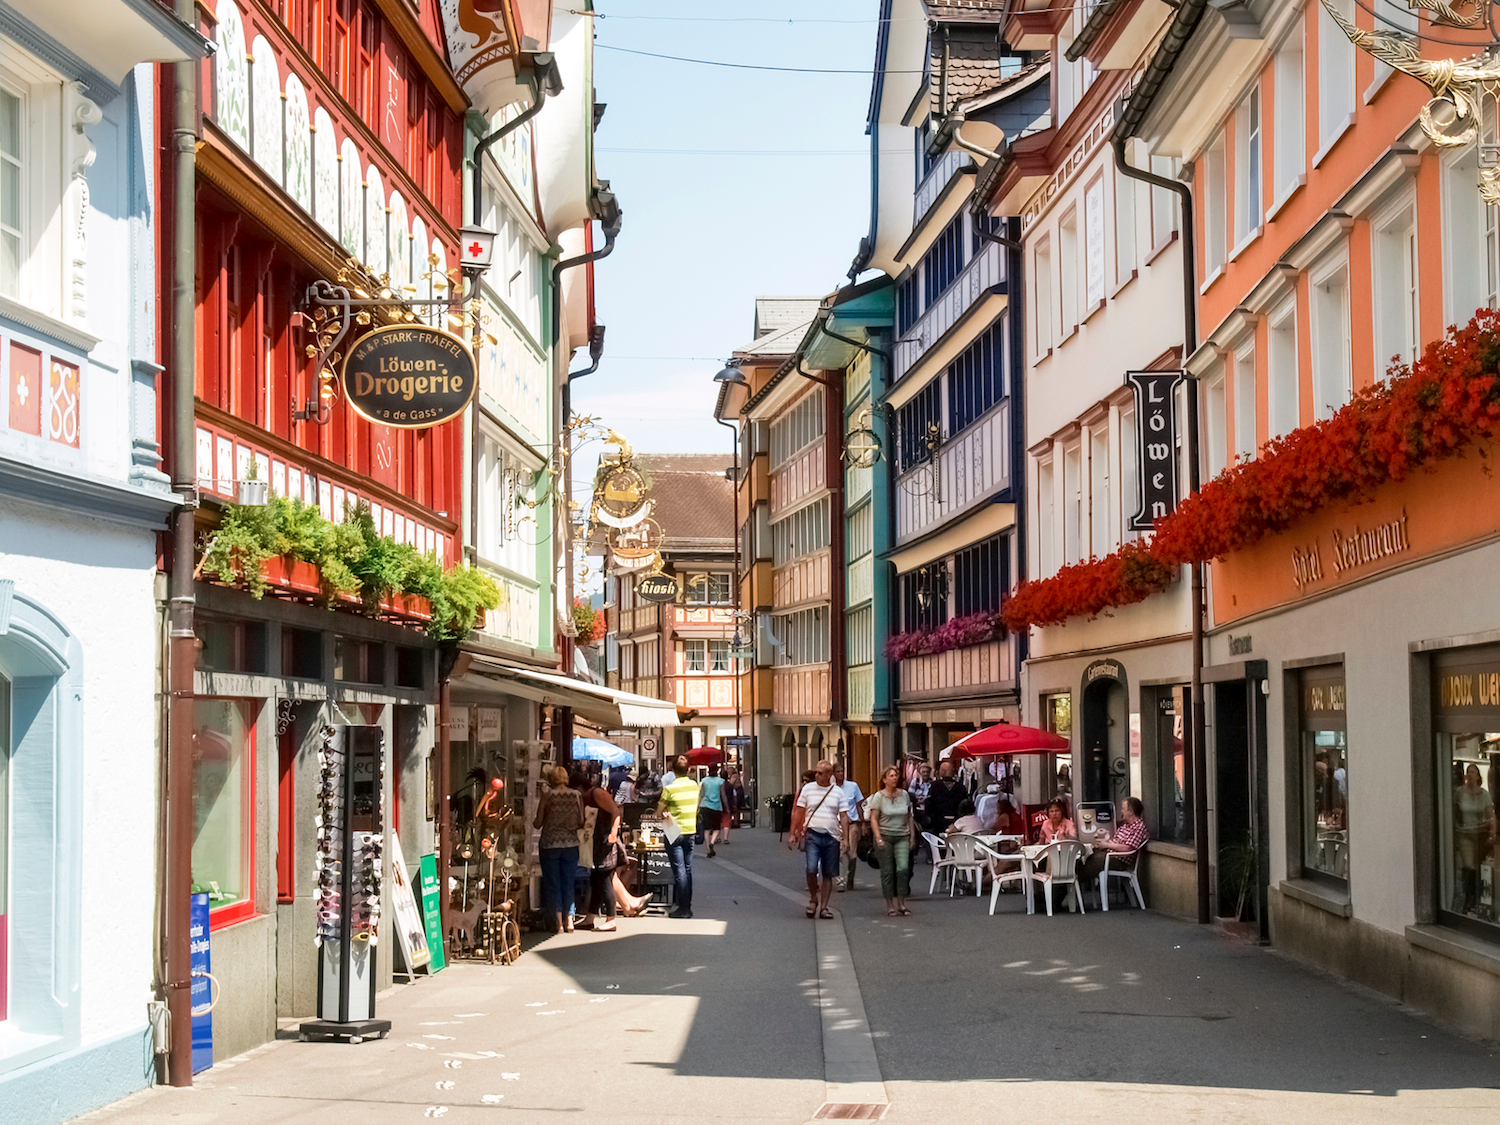 Taking a stroll through the Appenzell, a small village in northeastern Switzerland, is like taking a step back in time.